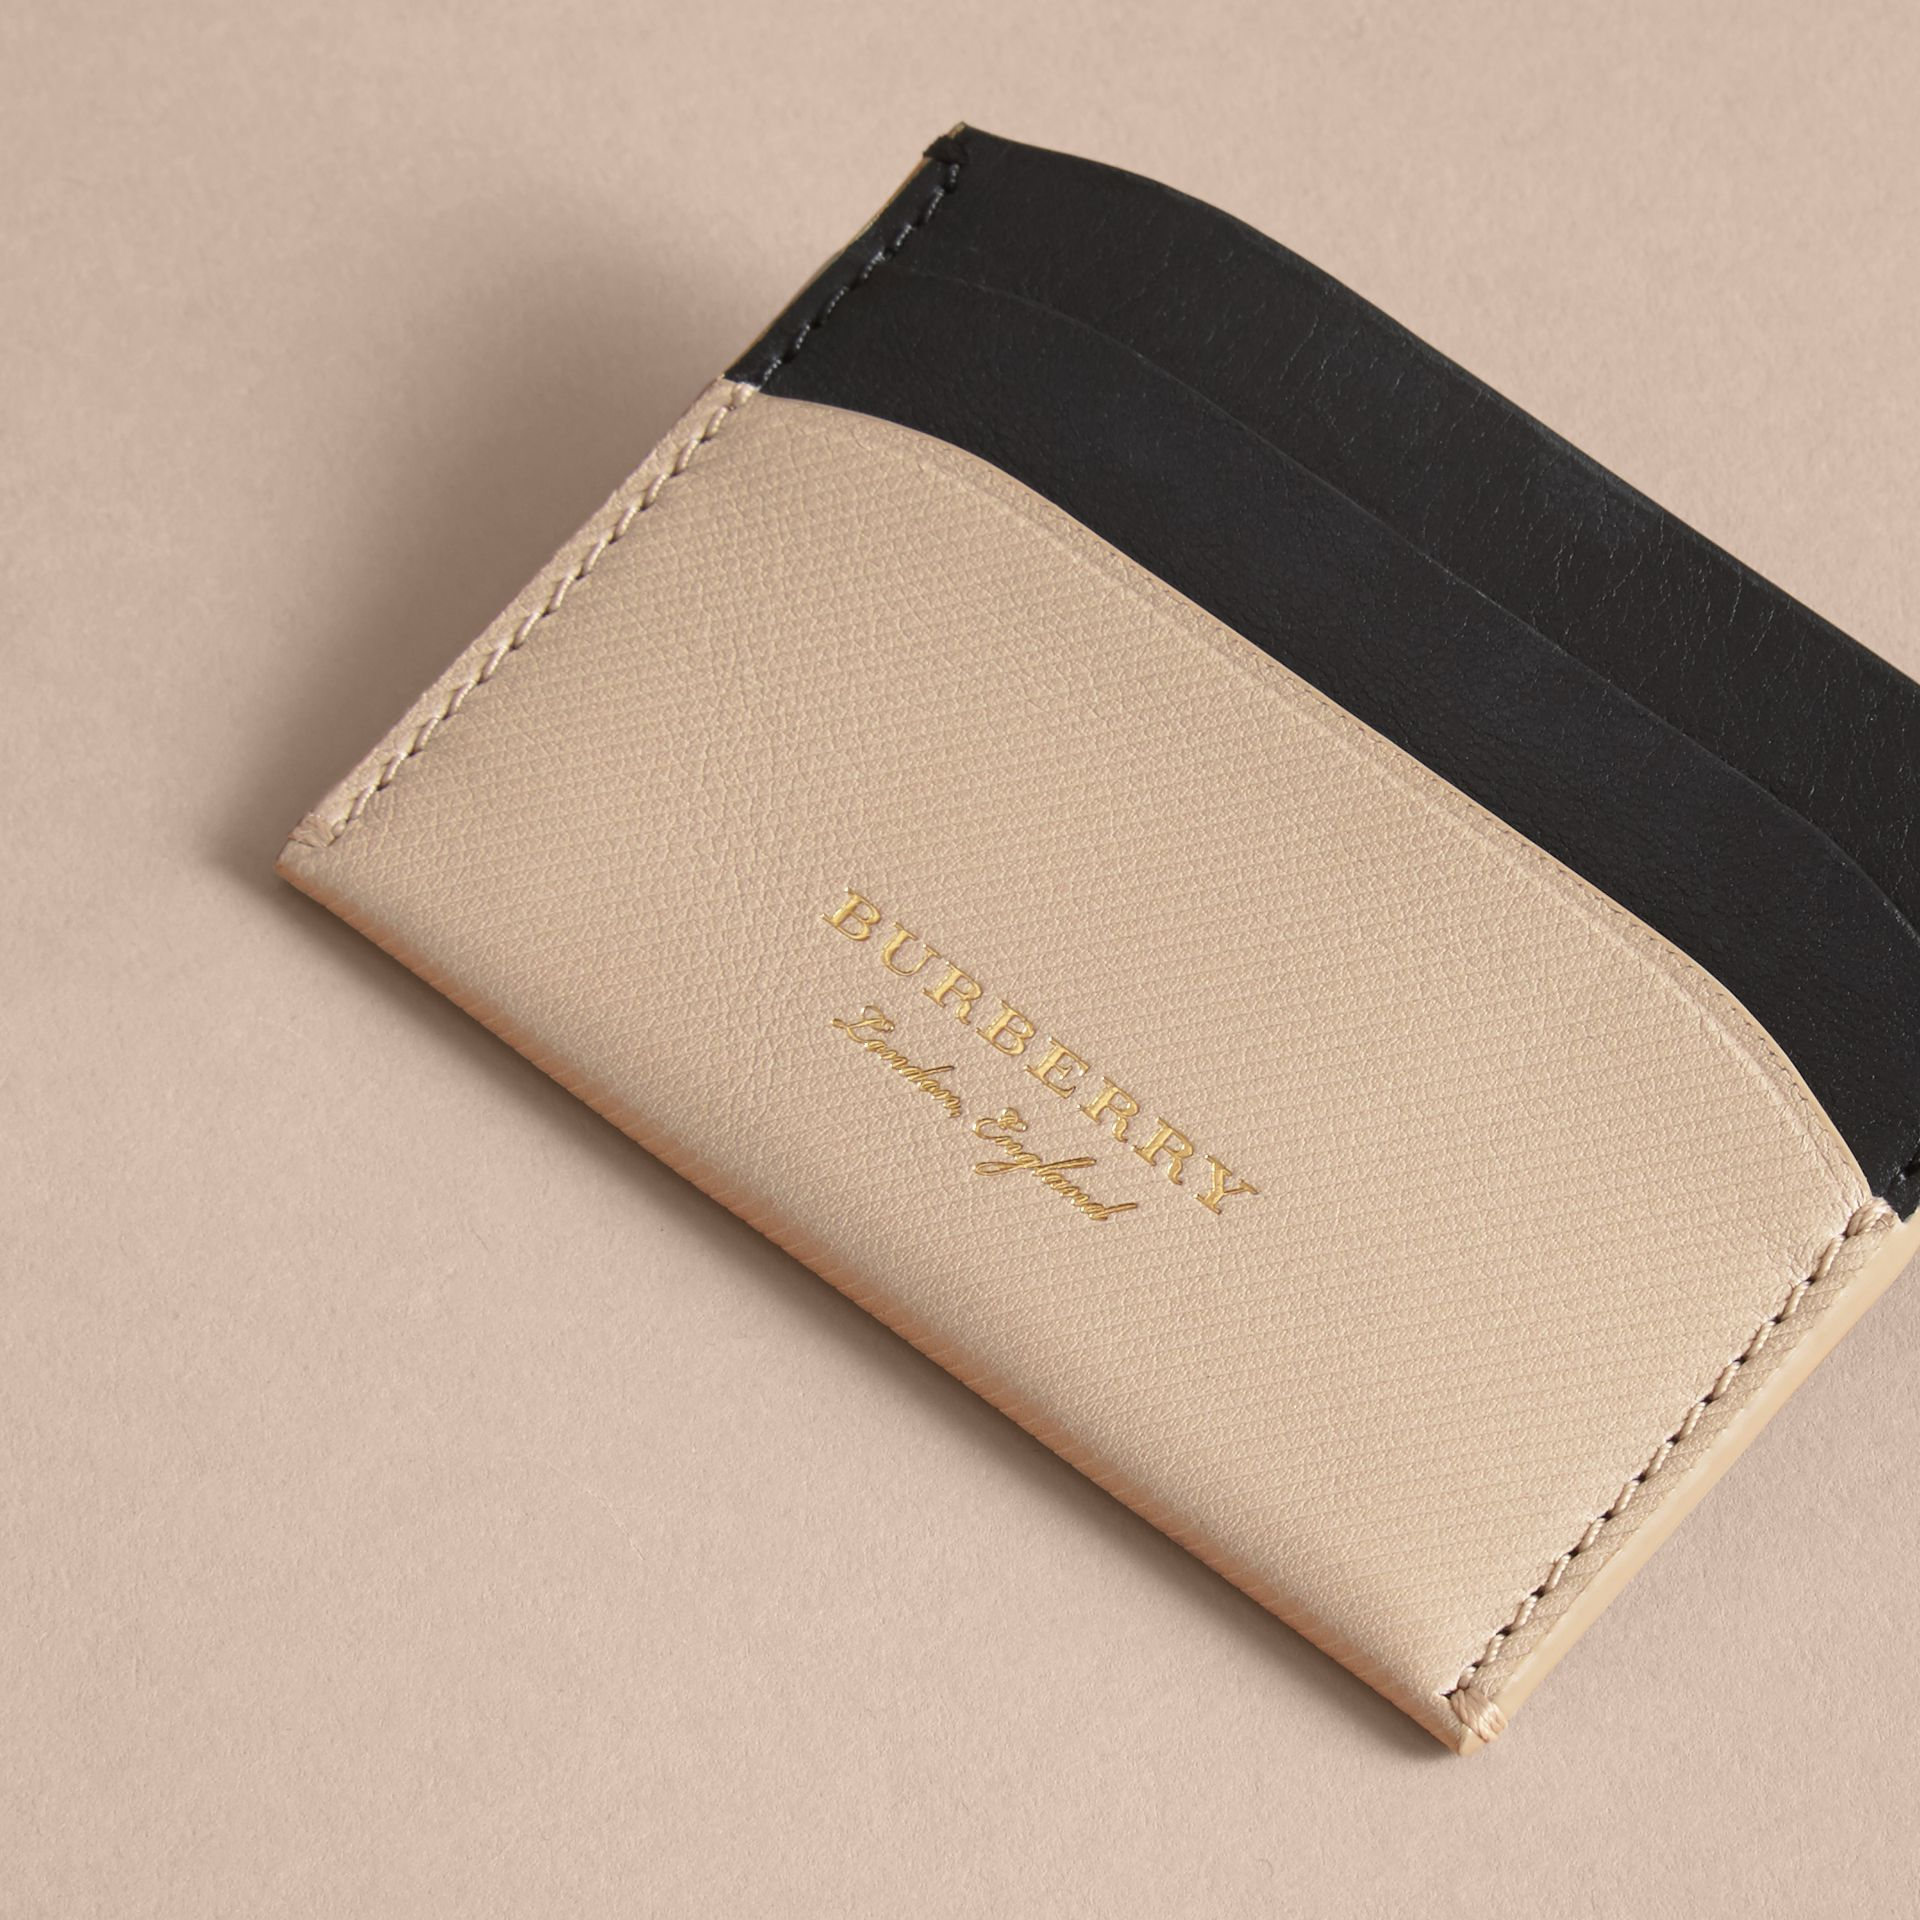 Two-tone Trench Leather Card Case in Limestone/ Black - Women | Burberry Canada - gallery image 2